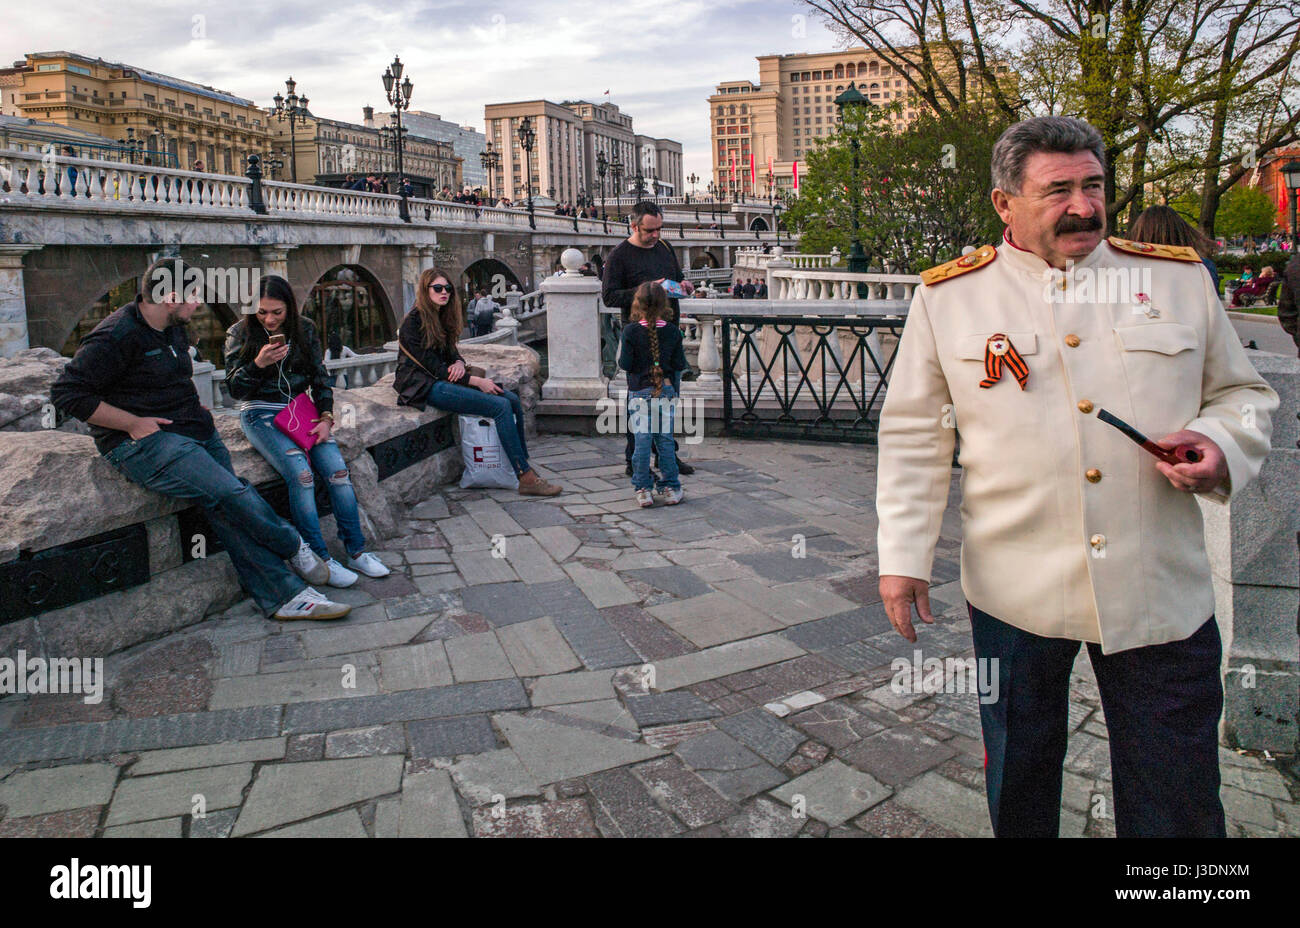 Stalin - Stock Image